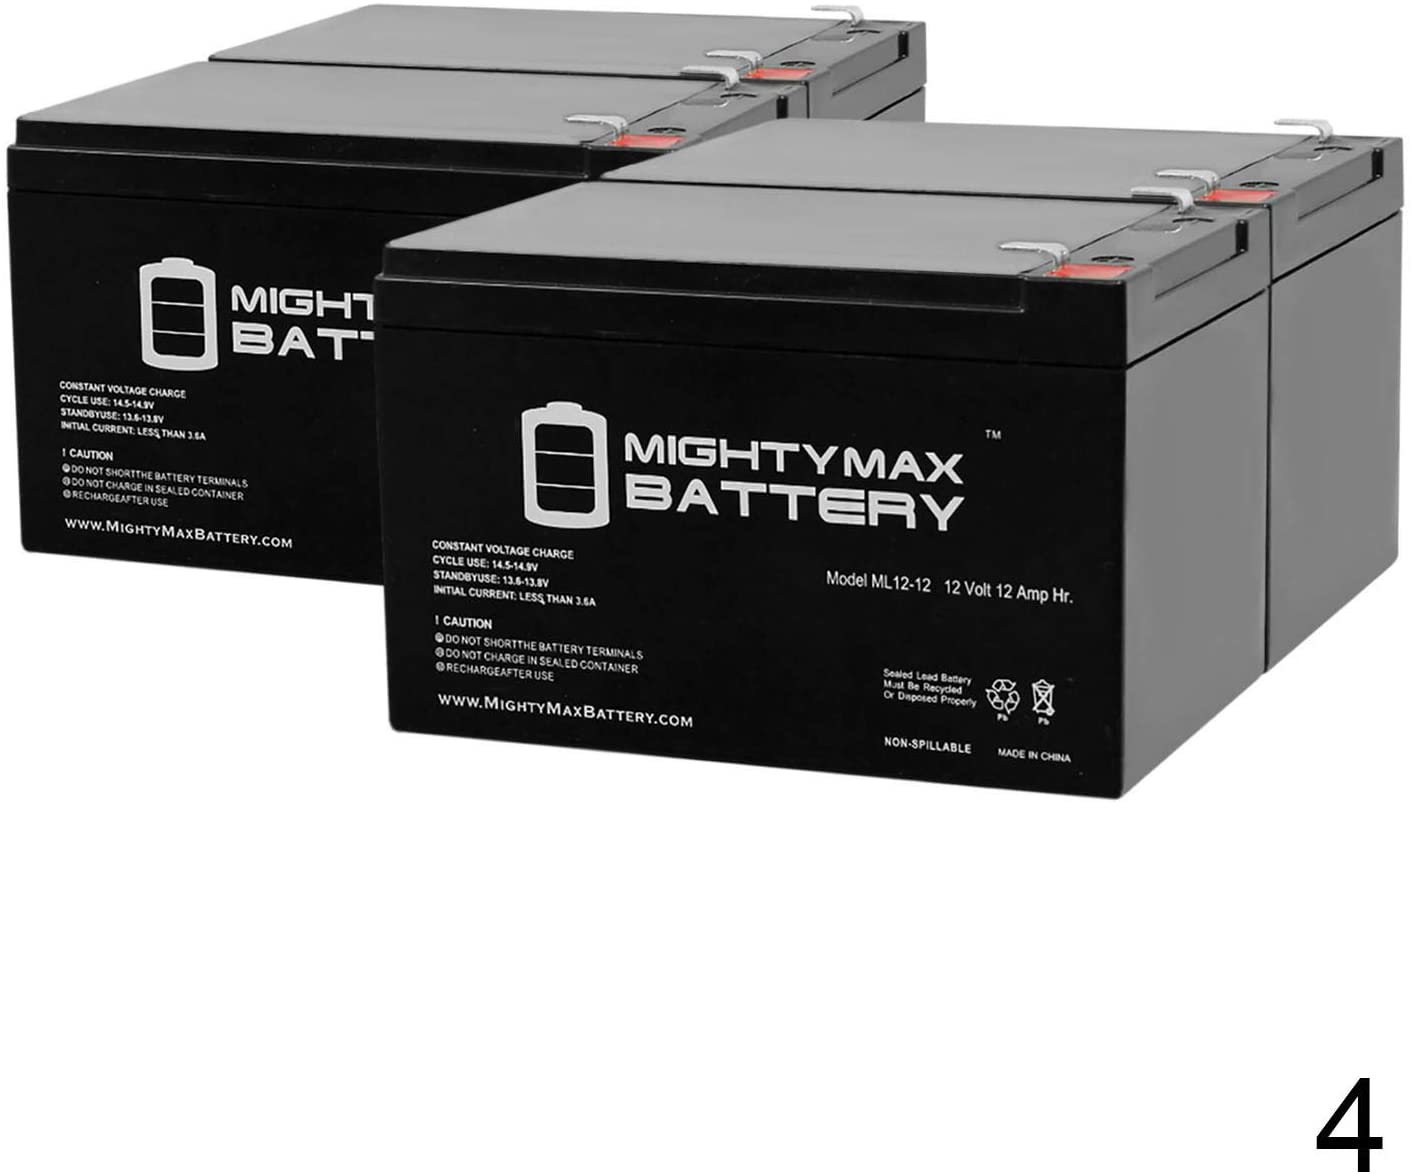 Mighty Max Battery 12V 12Ah F2 UPS Battery for Power Patrol Sla1105-4 Pack Brand Product